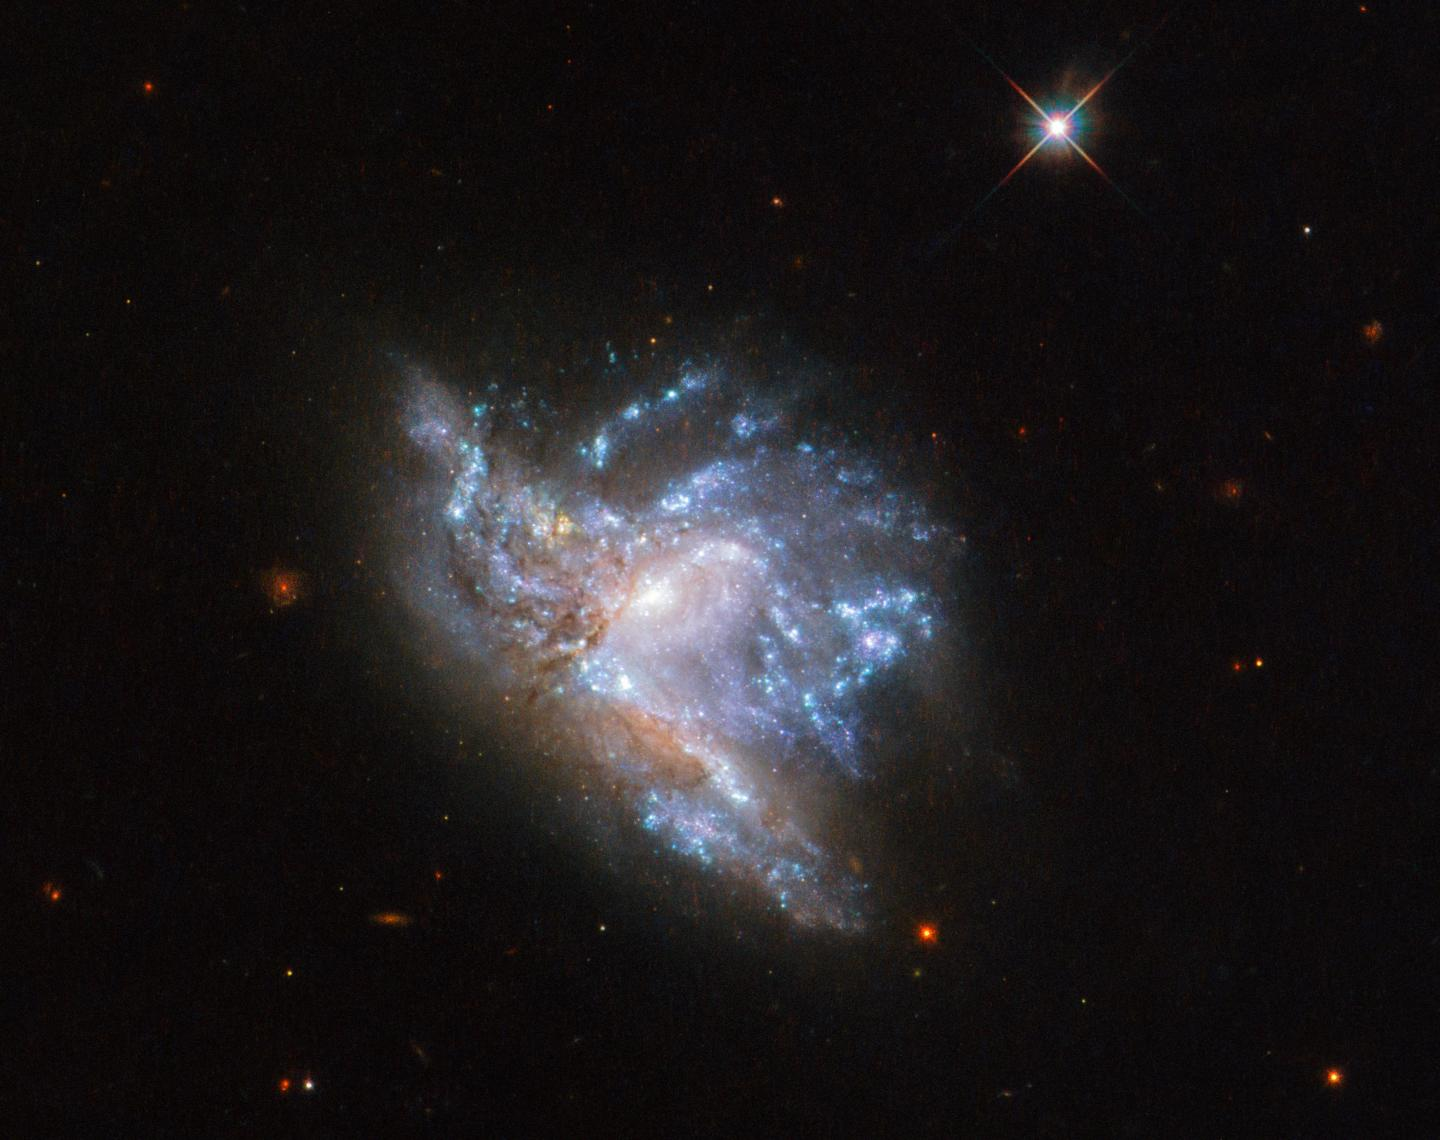 The collision of two distant galaxies was caught in this new Hubble image